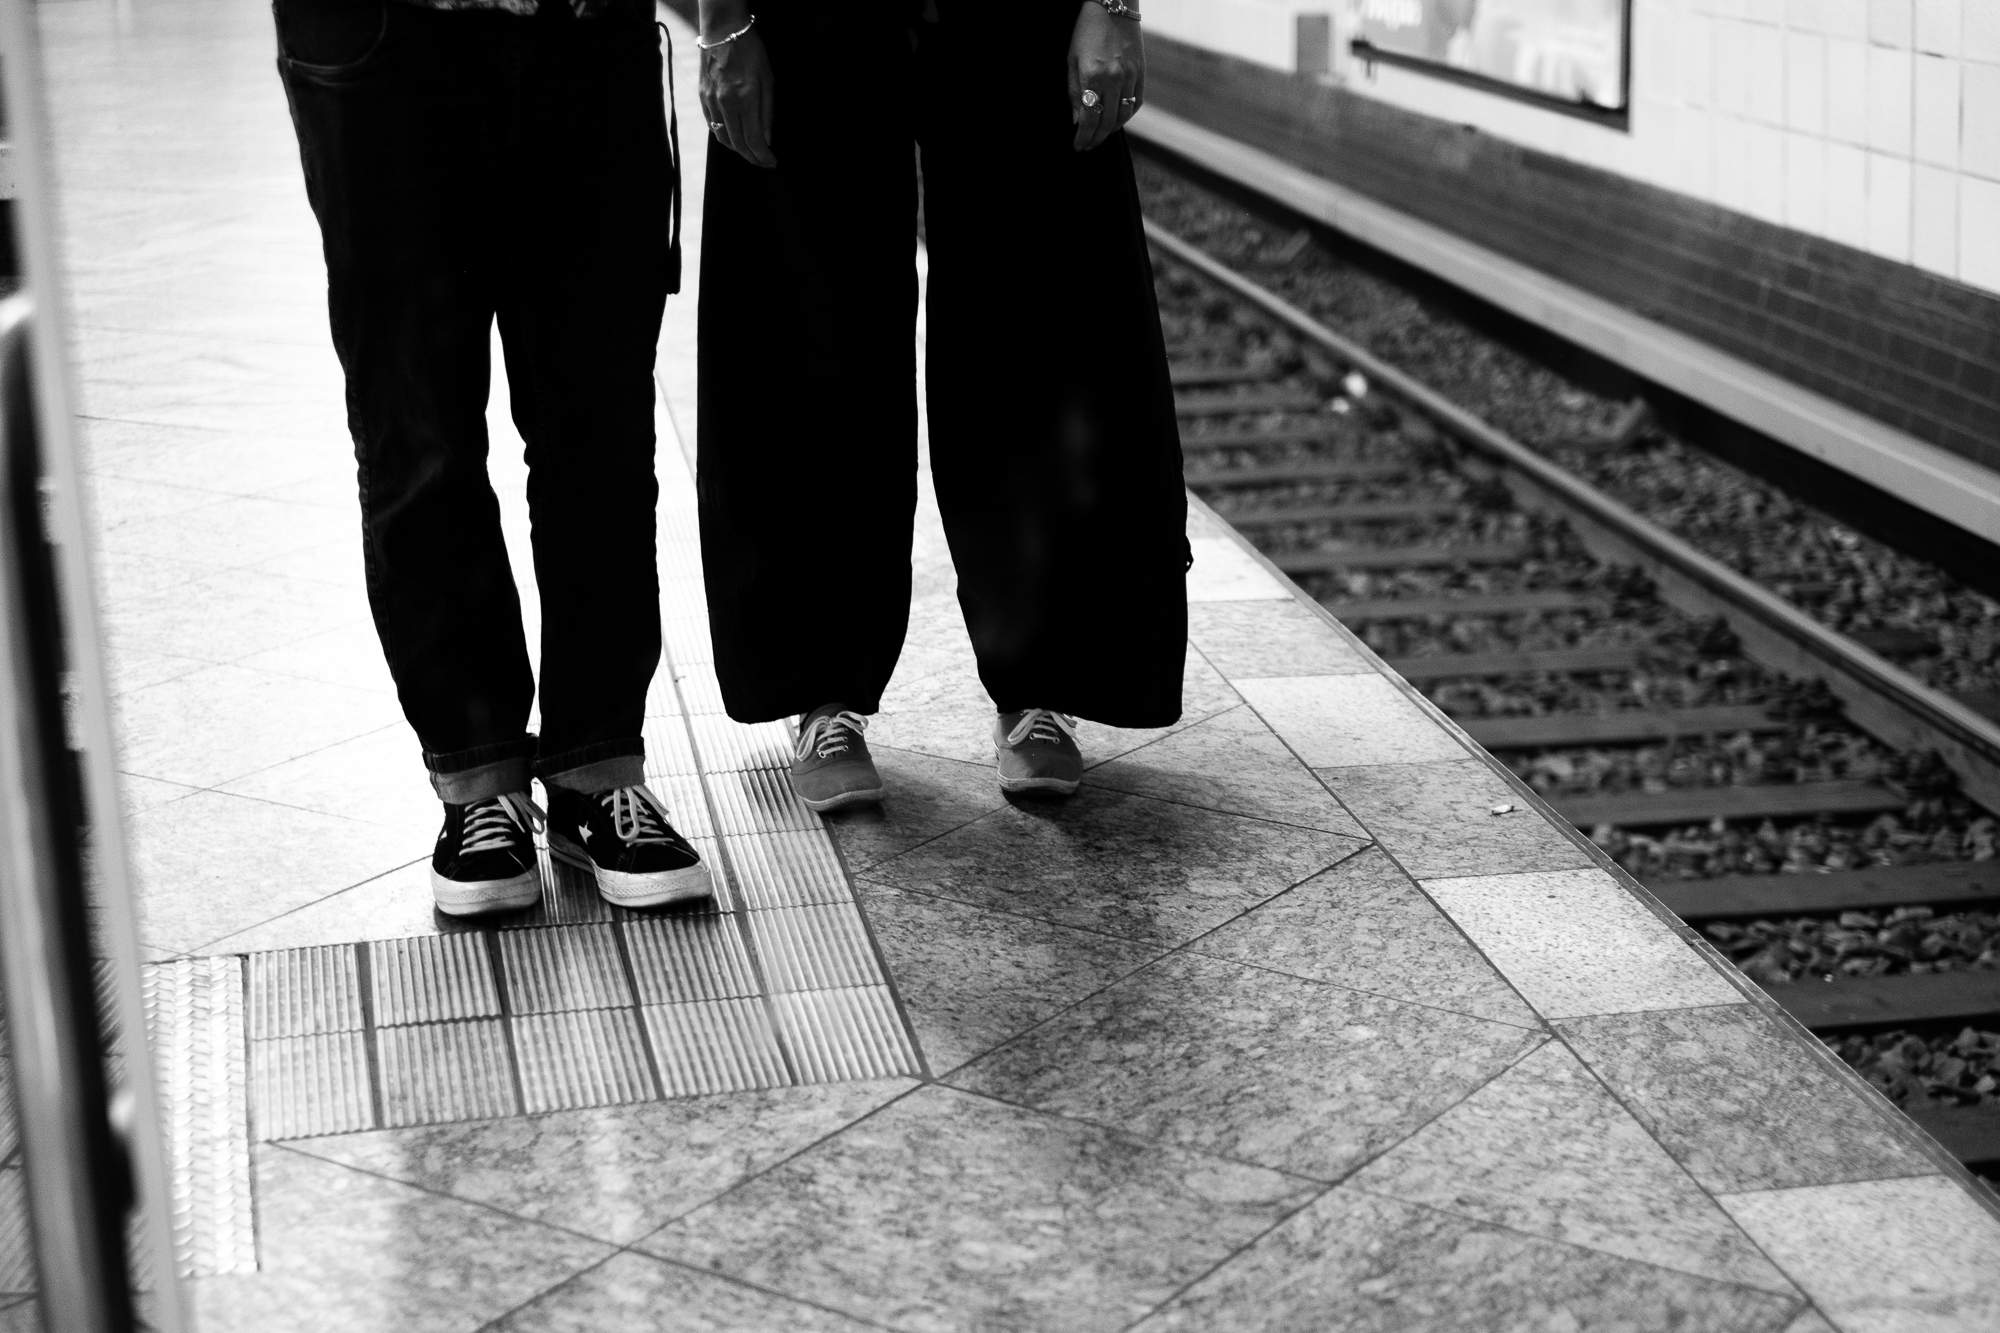 Two pairs of legs on a subway platform in Berlin